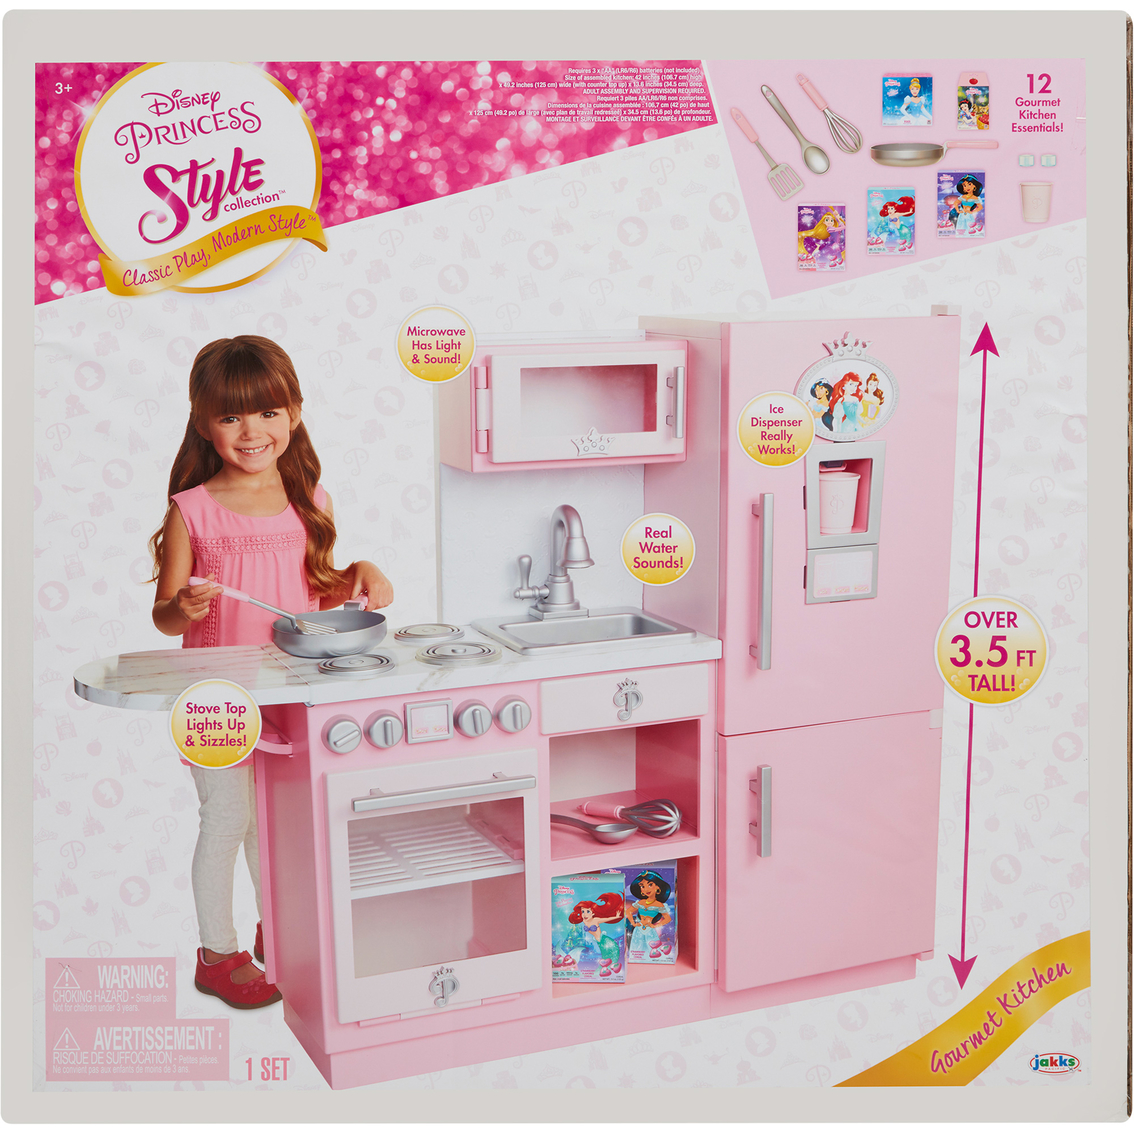 My Disney Kitchen: Disney Princess Style Collection Gourmet Kitchen